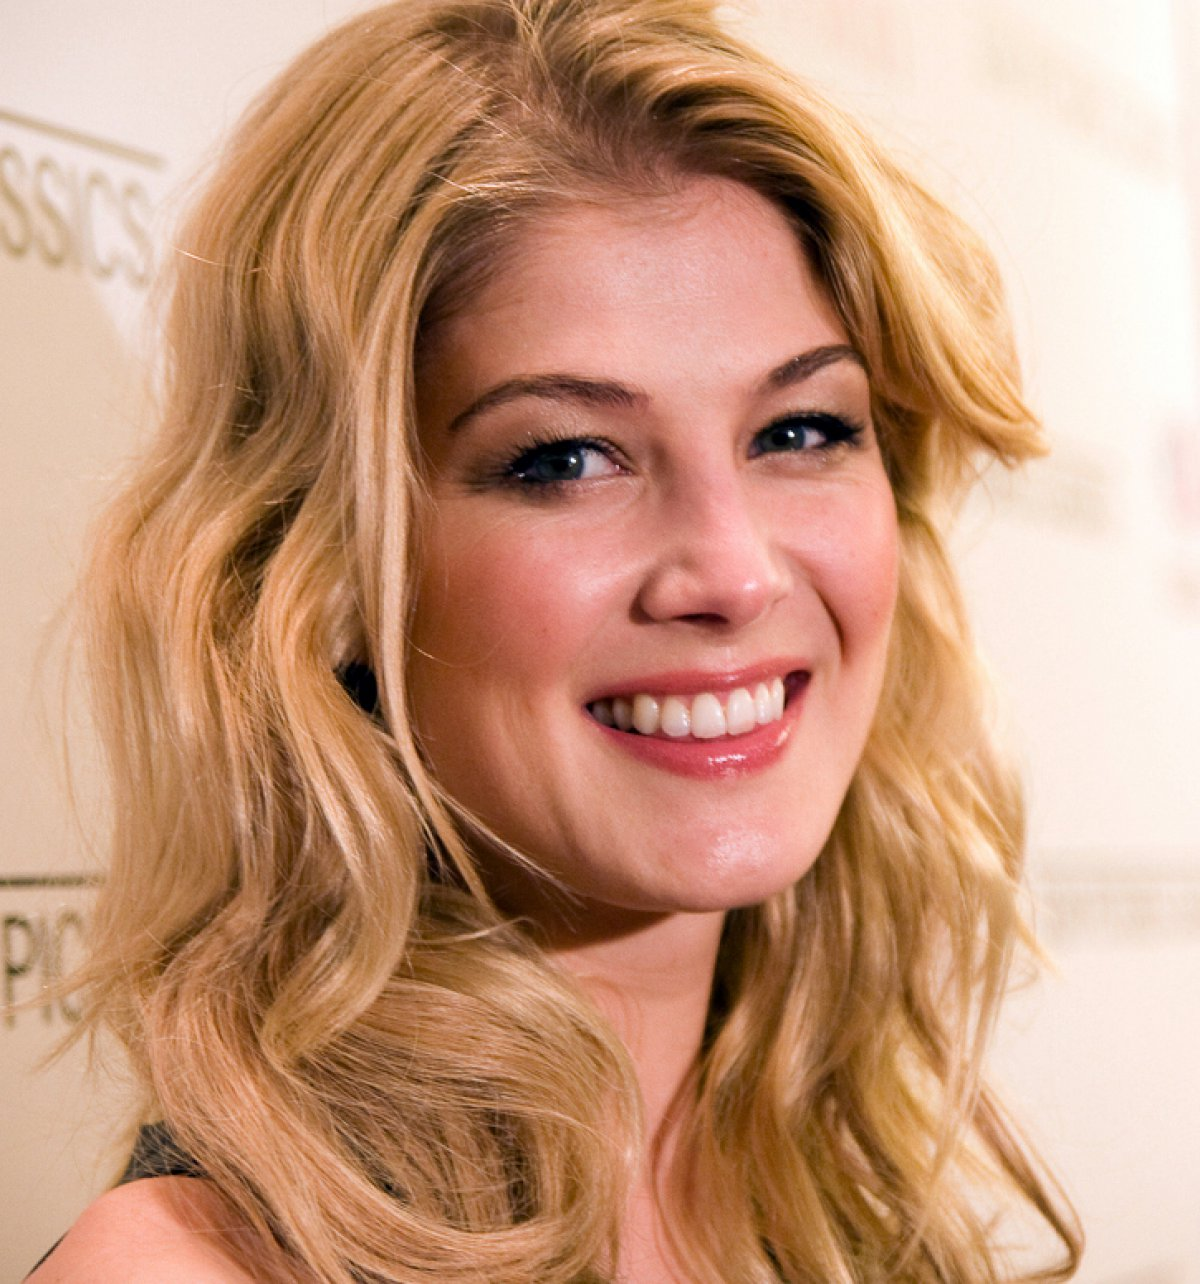 Selfie Rosamund Pike nudes (99 foto and video), Topless, Cleavage, Twitter, butt 2018